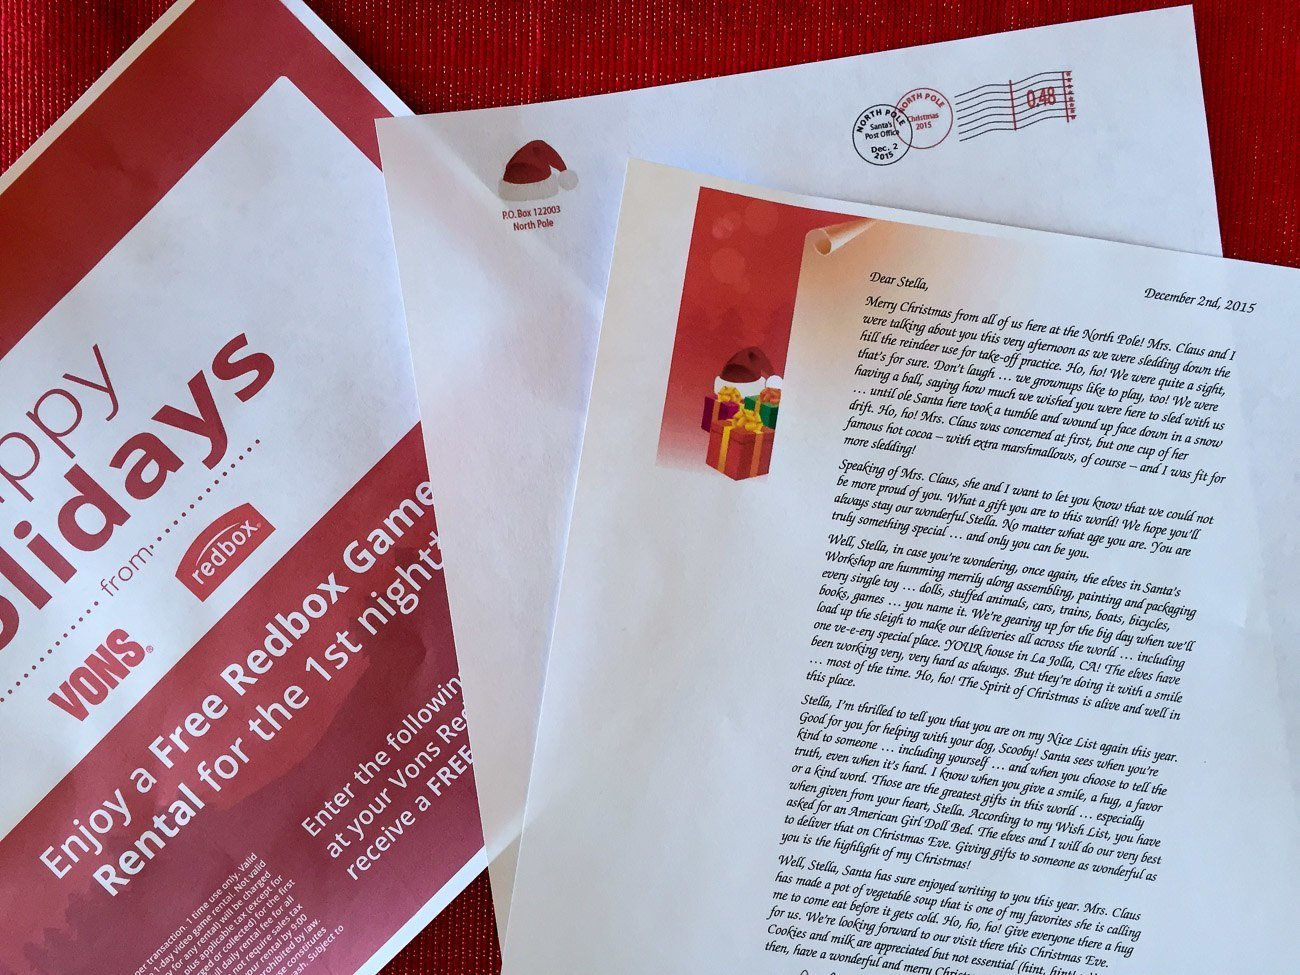 How to print a free letter from Santa to your child and earn coupons, too.